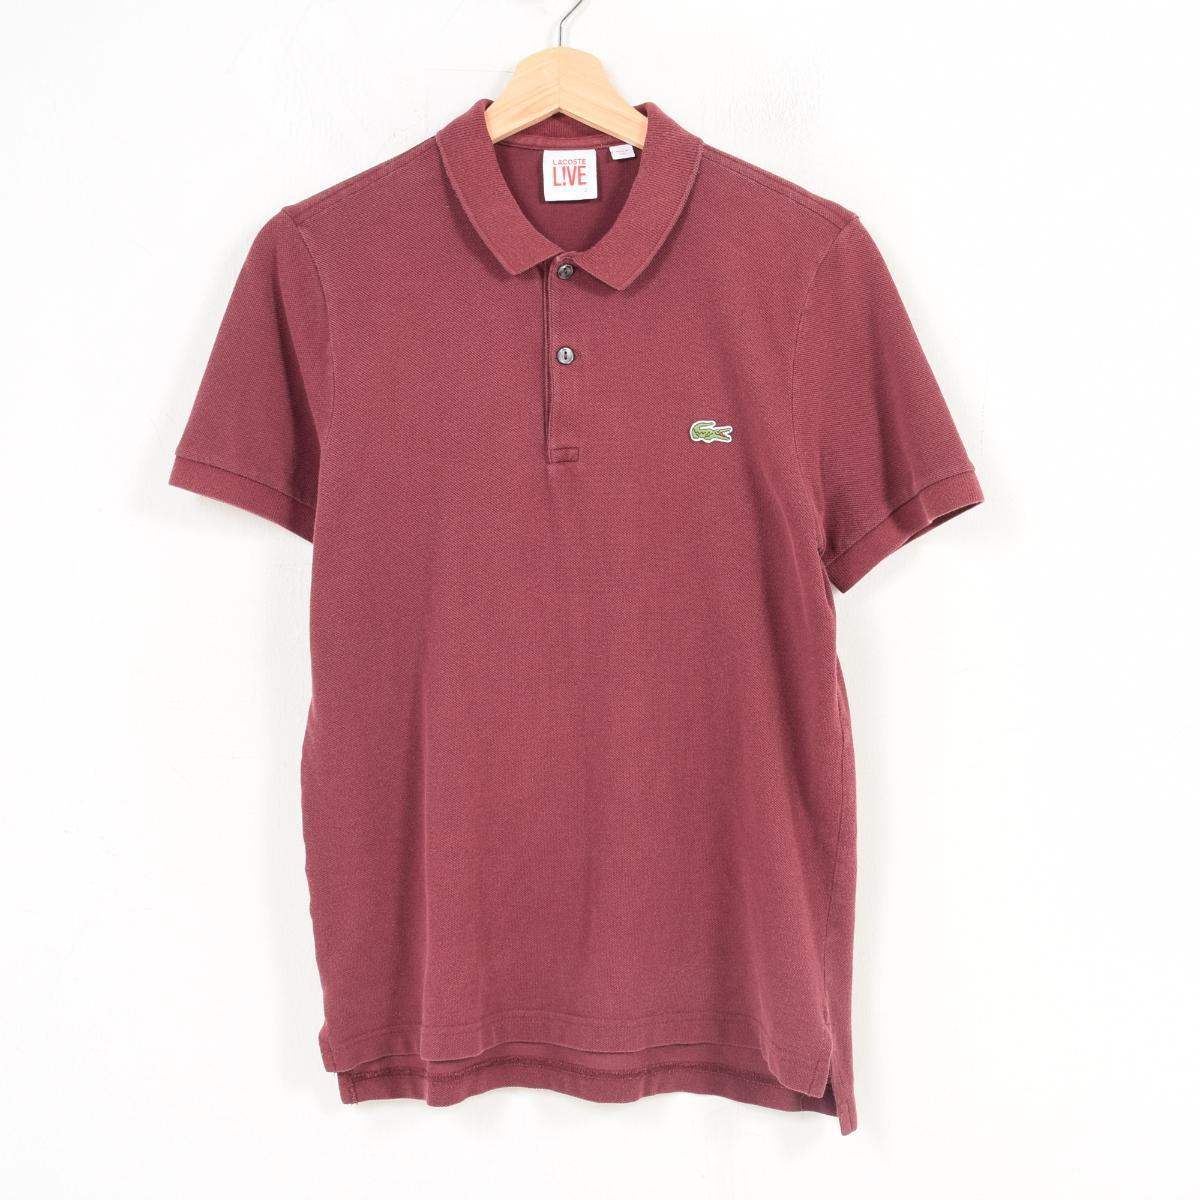 Vintage Clothing Jam Lacoste Lacoste Live Short Sleeves Polo Shirt